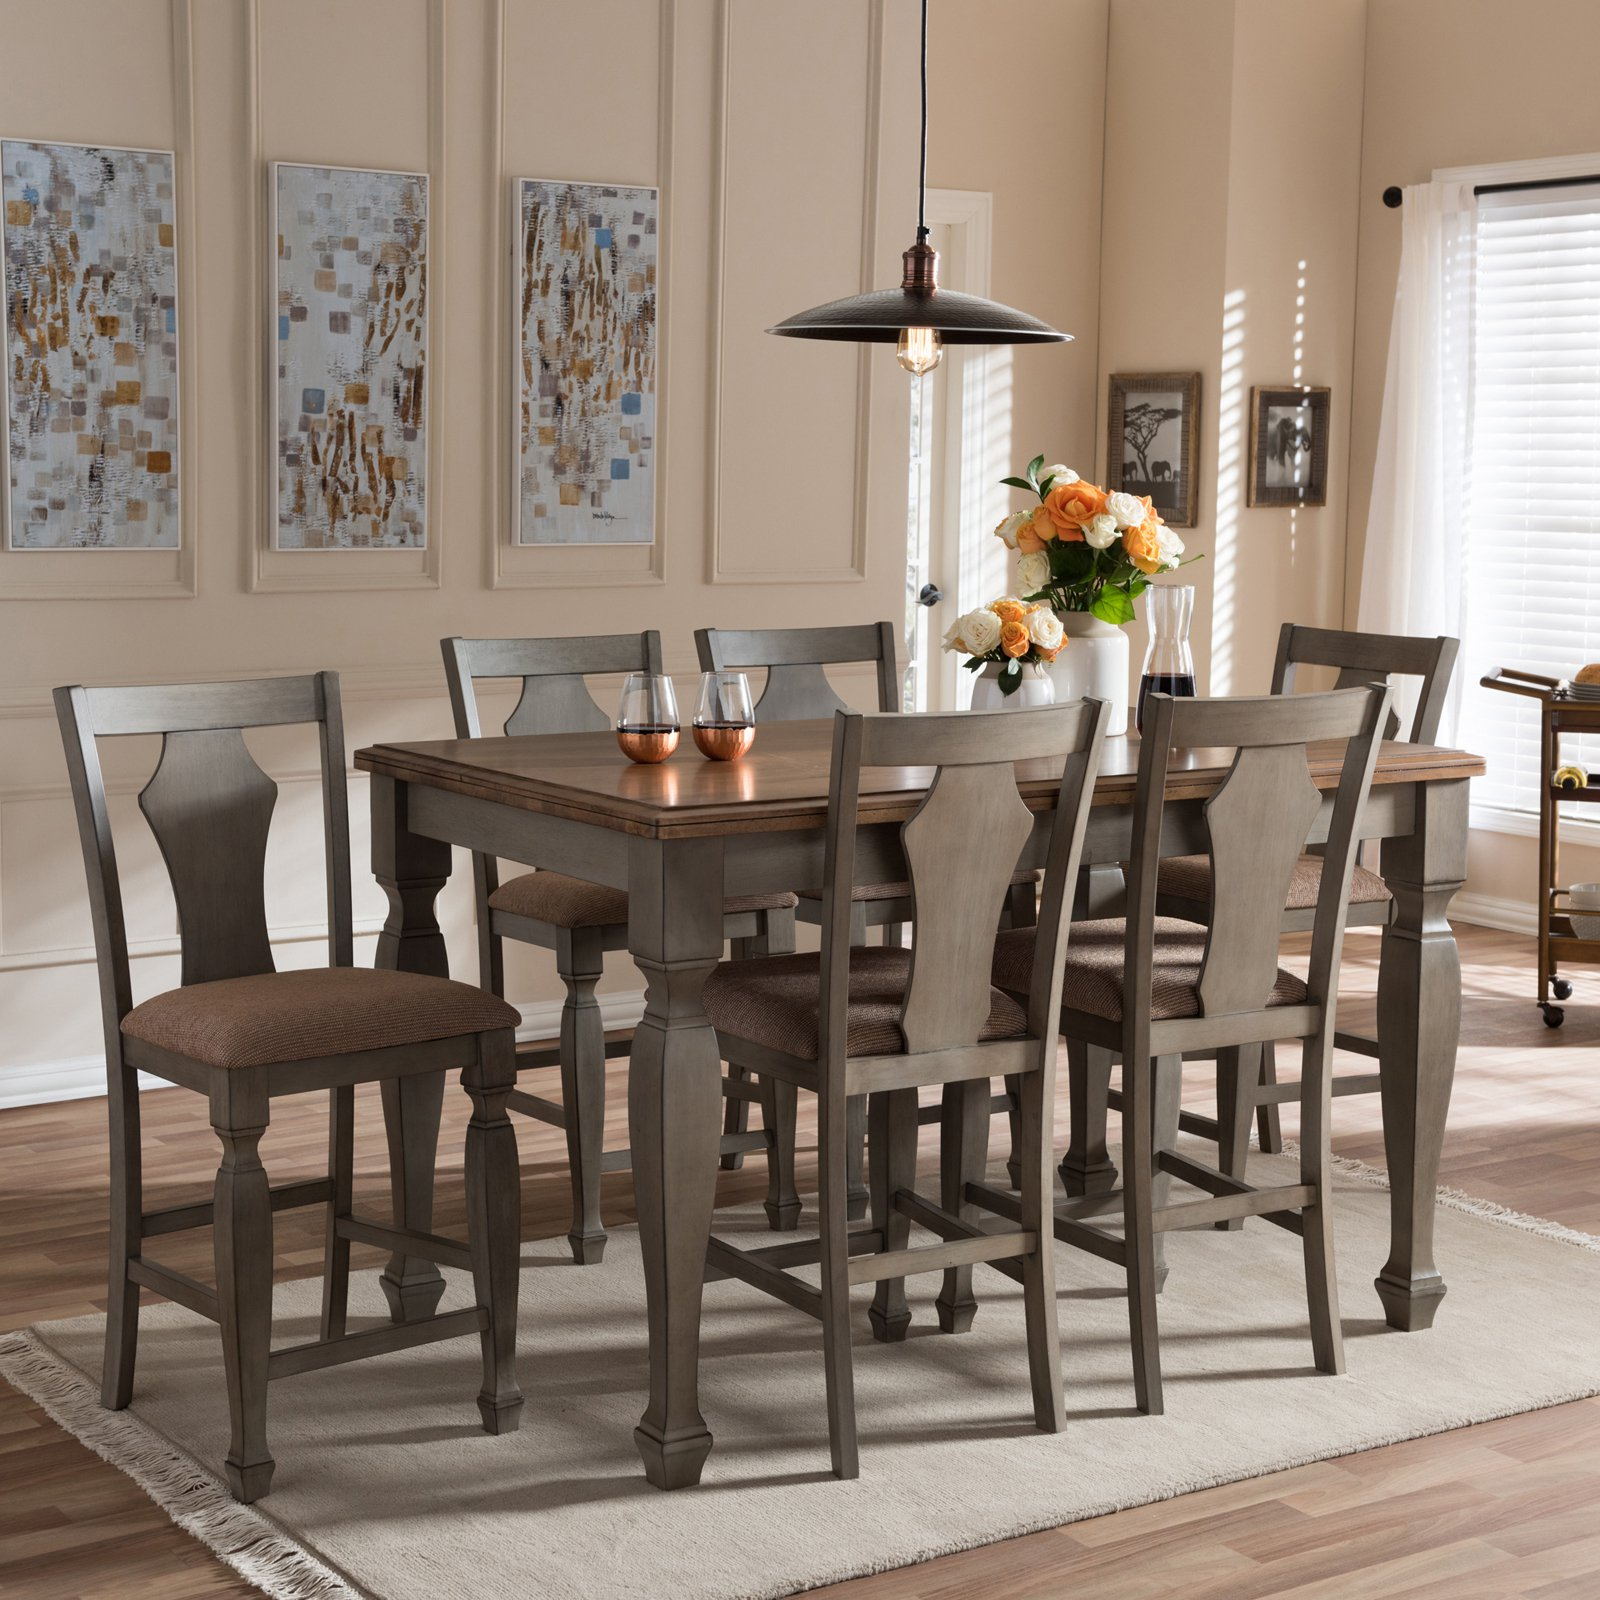 Baxton Studio Arianna 7 Piece Counter Height Dining Set   Walmart.com